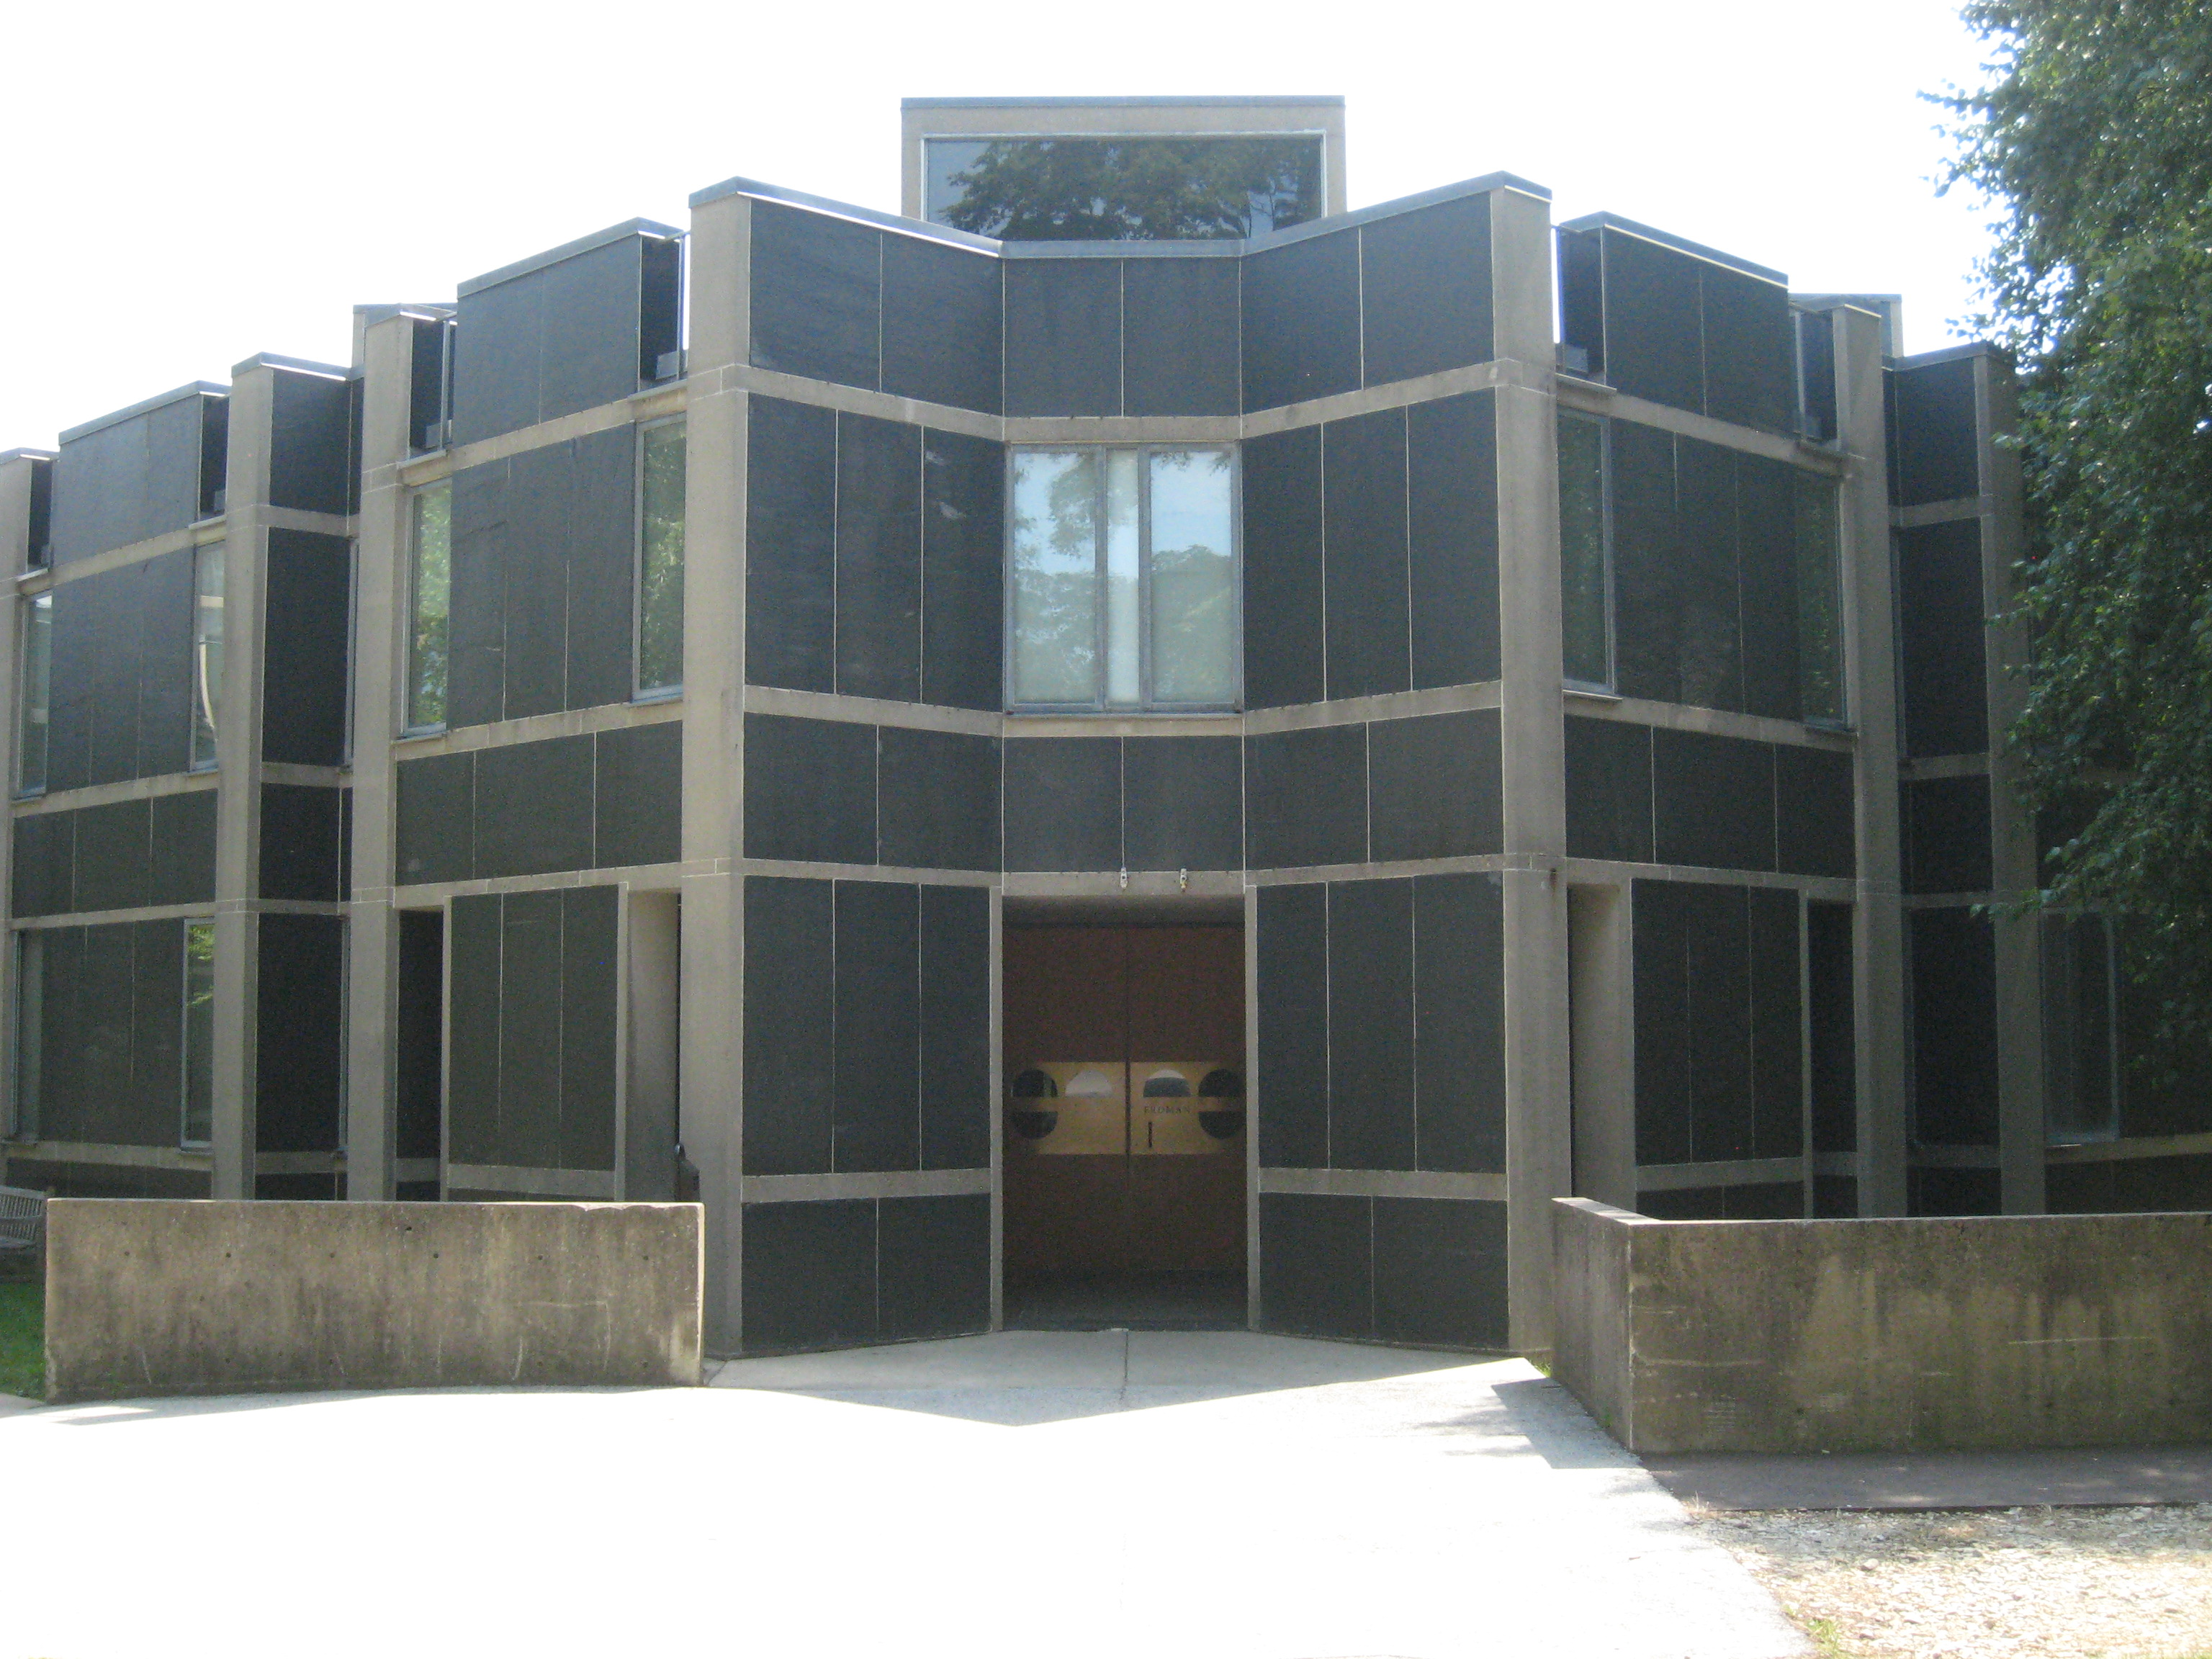 Delightful Erdman Hall Dormitory Was Designed By Louis Kahn And Was Completed In 1965.  Download Medium Thumbnail Nice Ideas